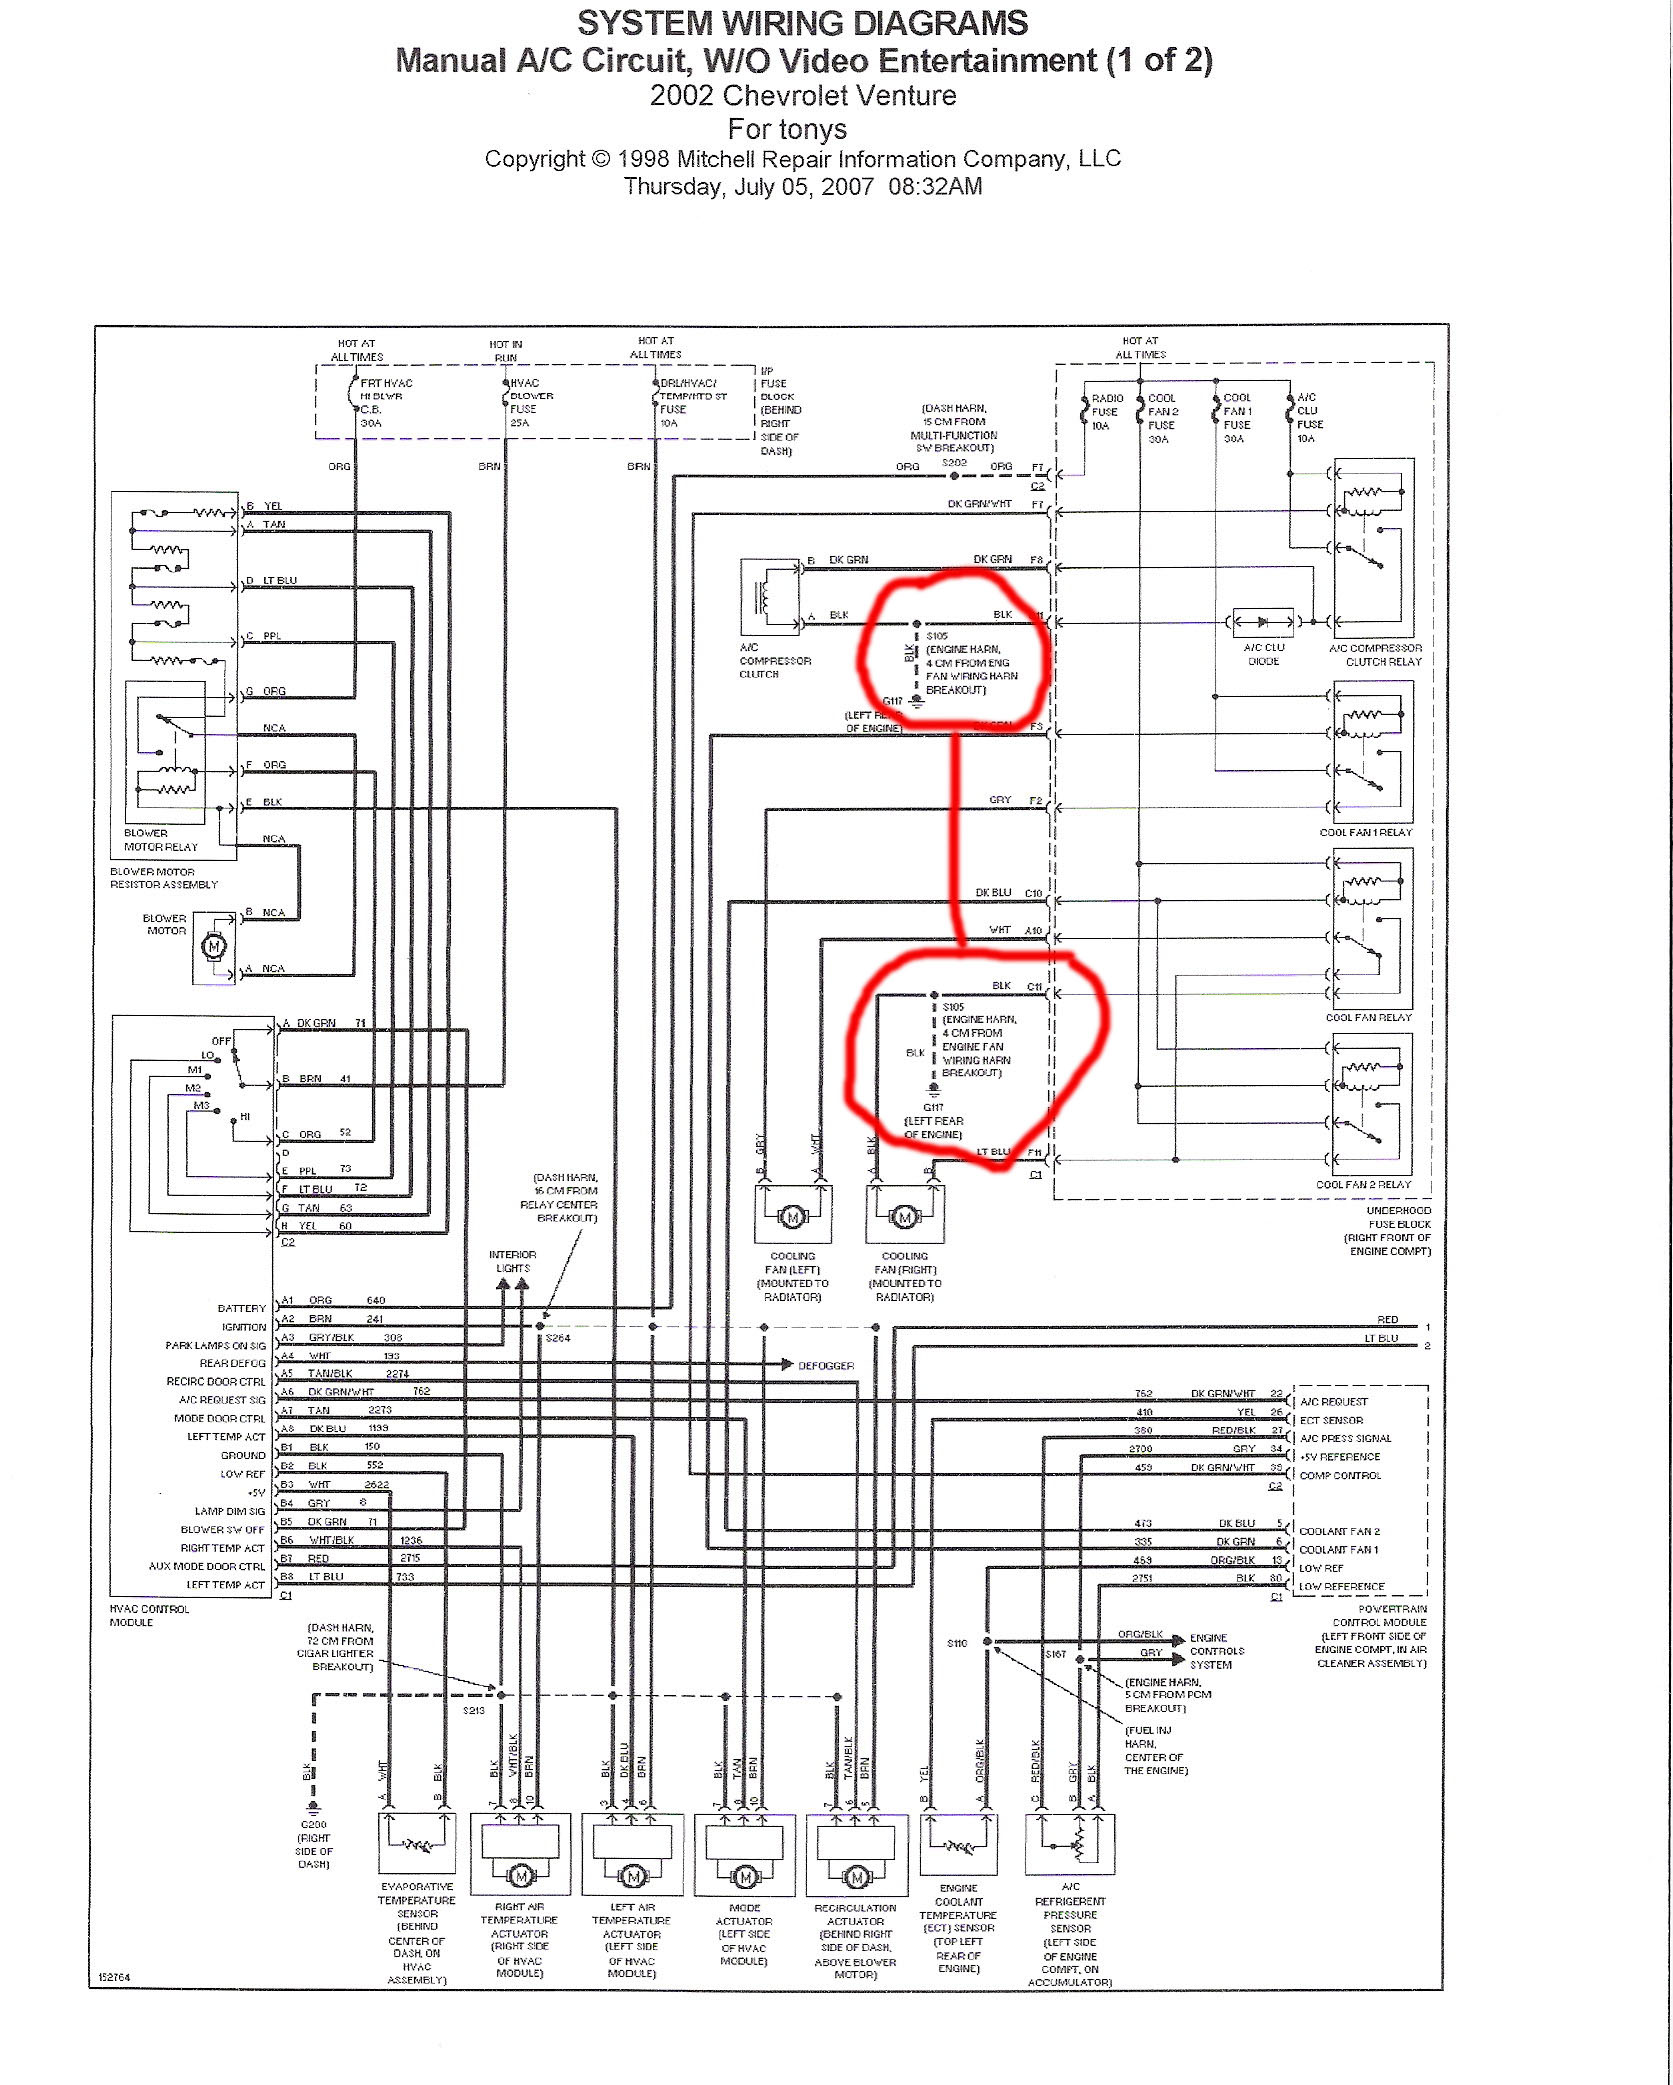 hight resolution of 2012 chevy cruze engine wiring diagram wiring diagrams rh 2 crocodilecruisedarwin com 2014 chevy cruze wiring diagram 2012 chevy cruze headlight wiring